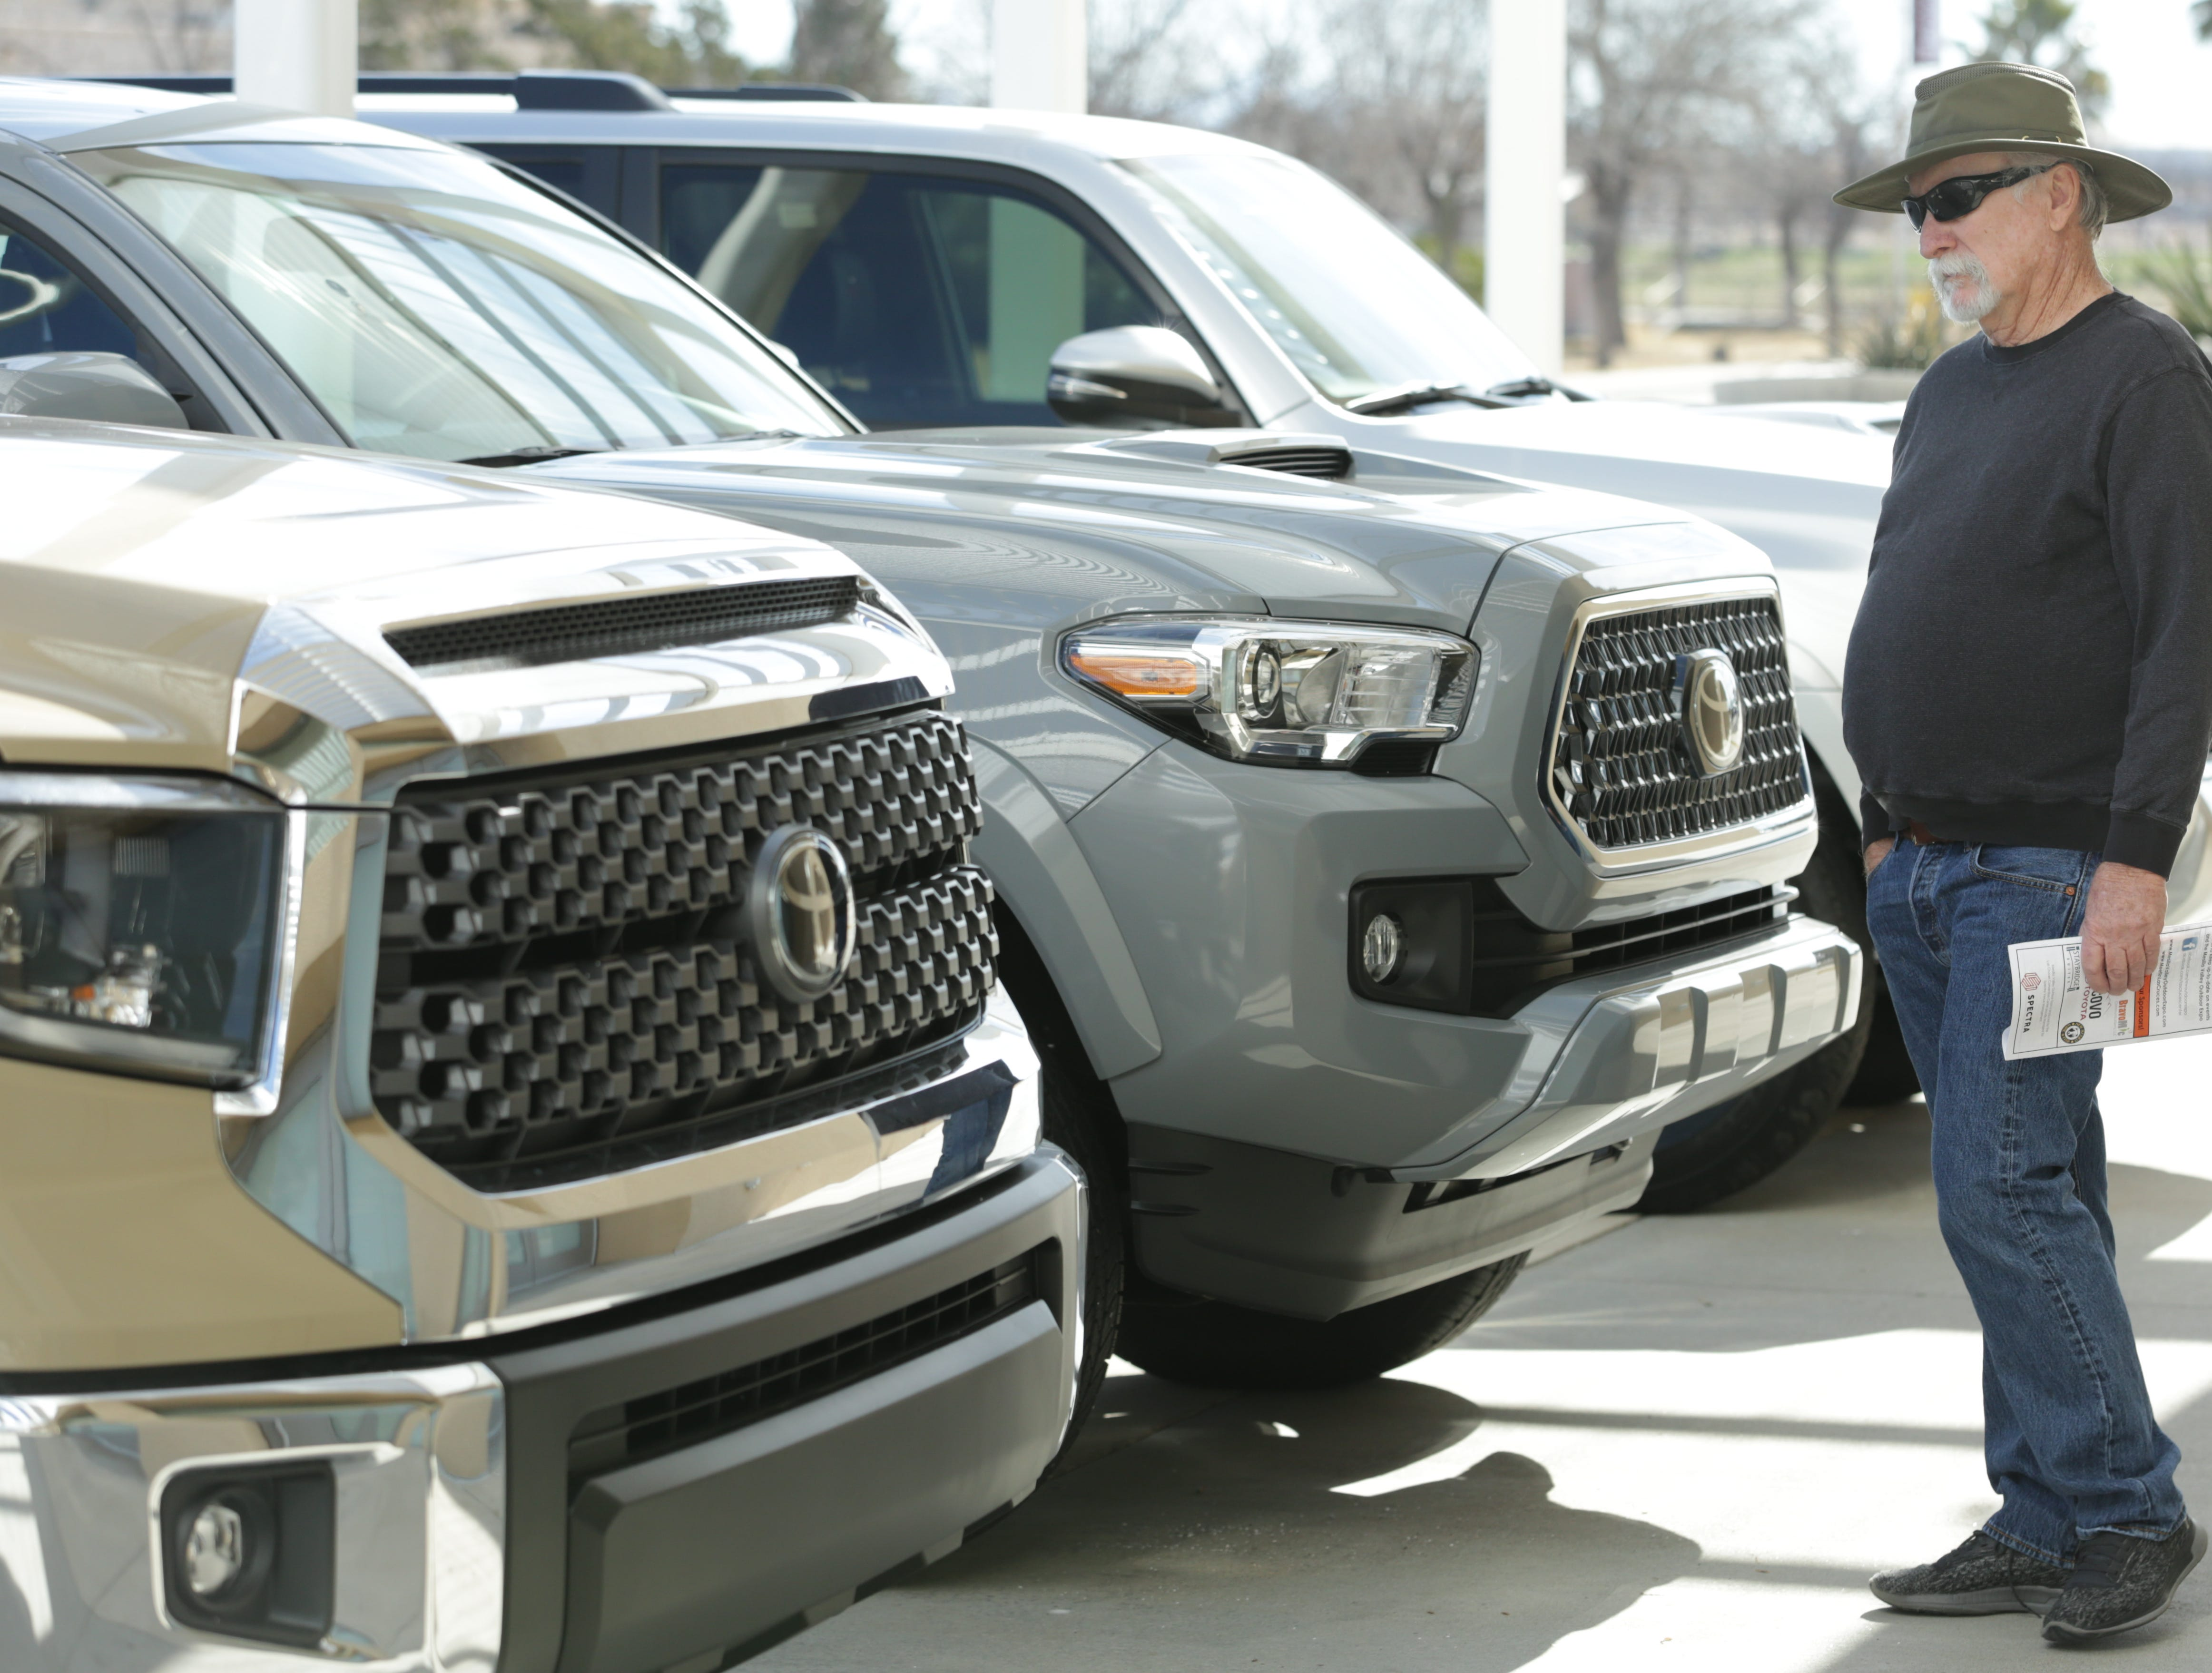 Toyota trucks are looked over by those attending the 2019 Mesilla Valley Outdoor Expo on Saturday, Jan. 12, 2019, at the Las Cruces Convention Center.